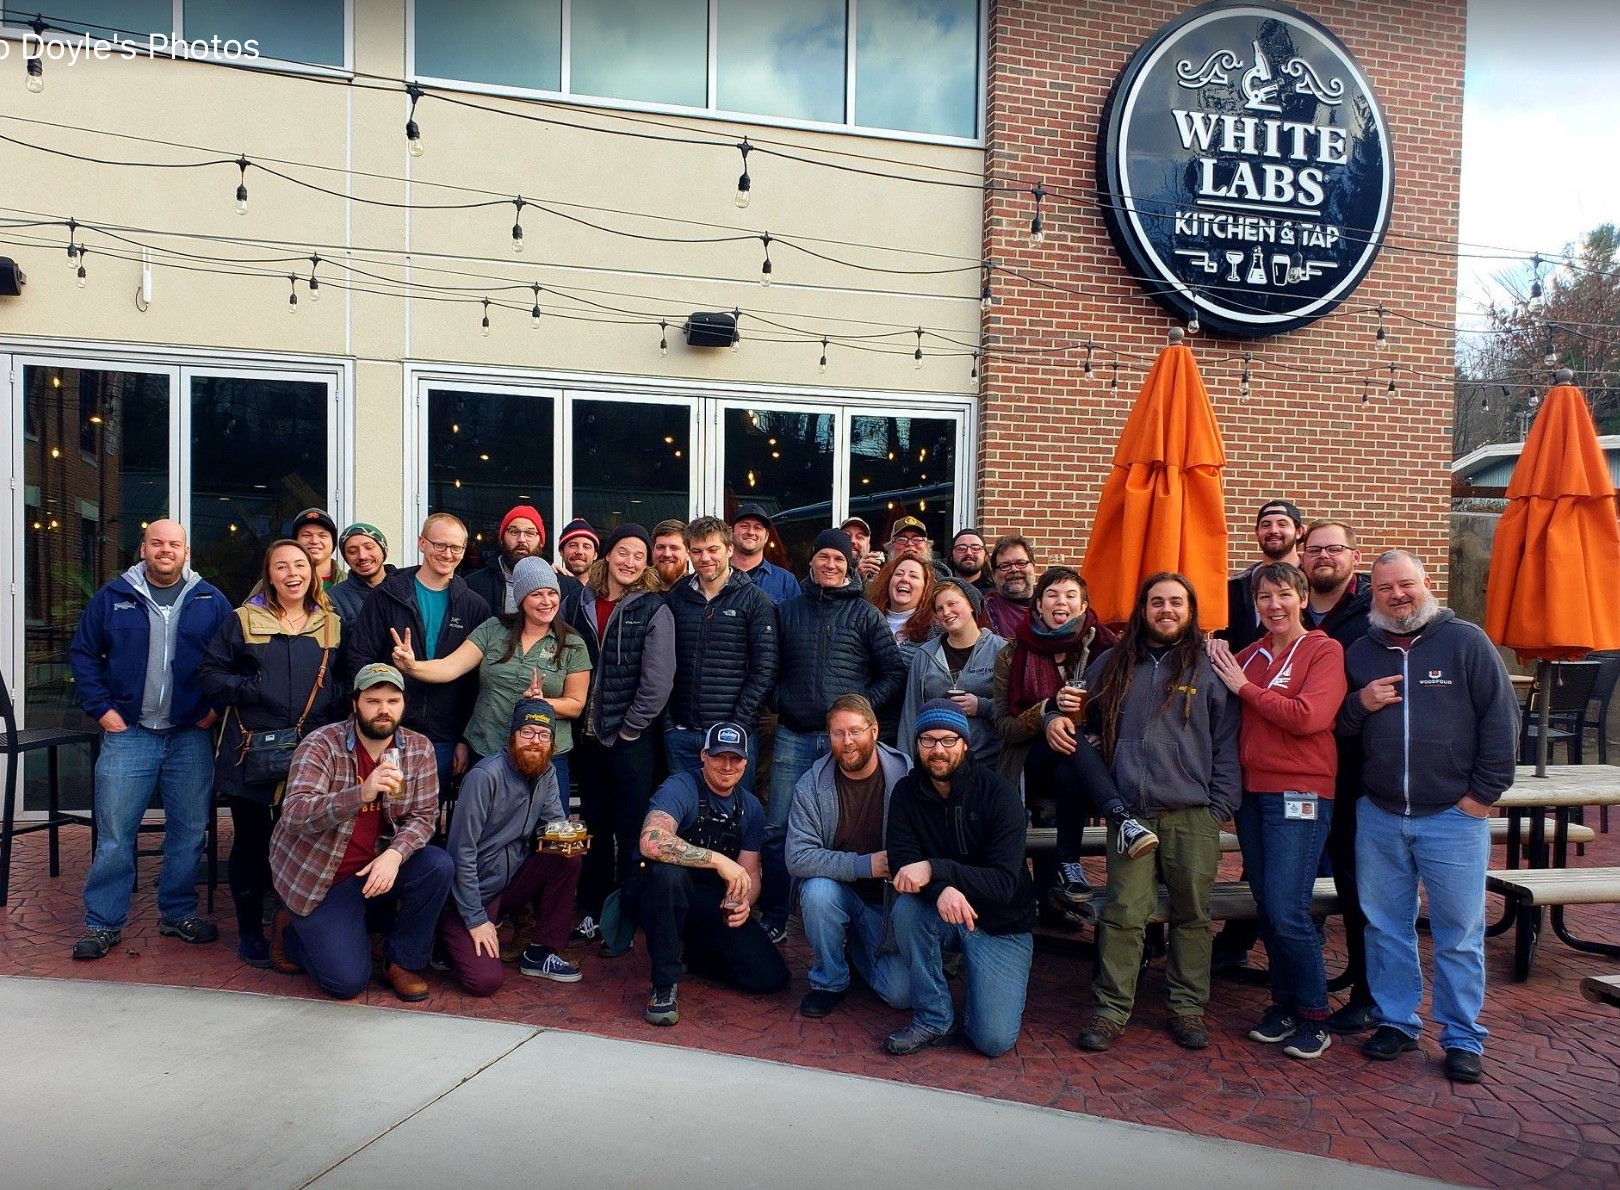 Day trip to Asheville with the Knoxville Area Brewer's Association.